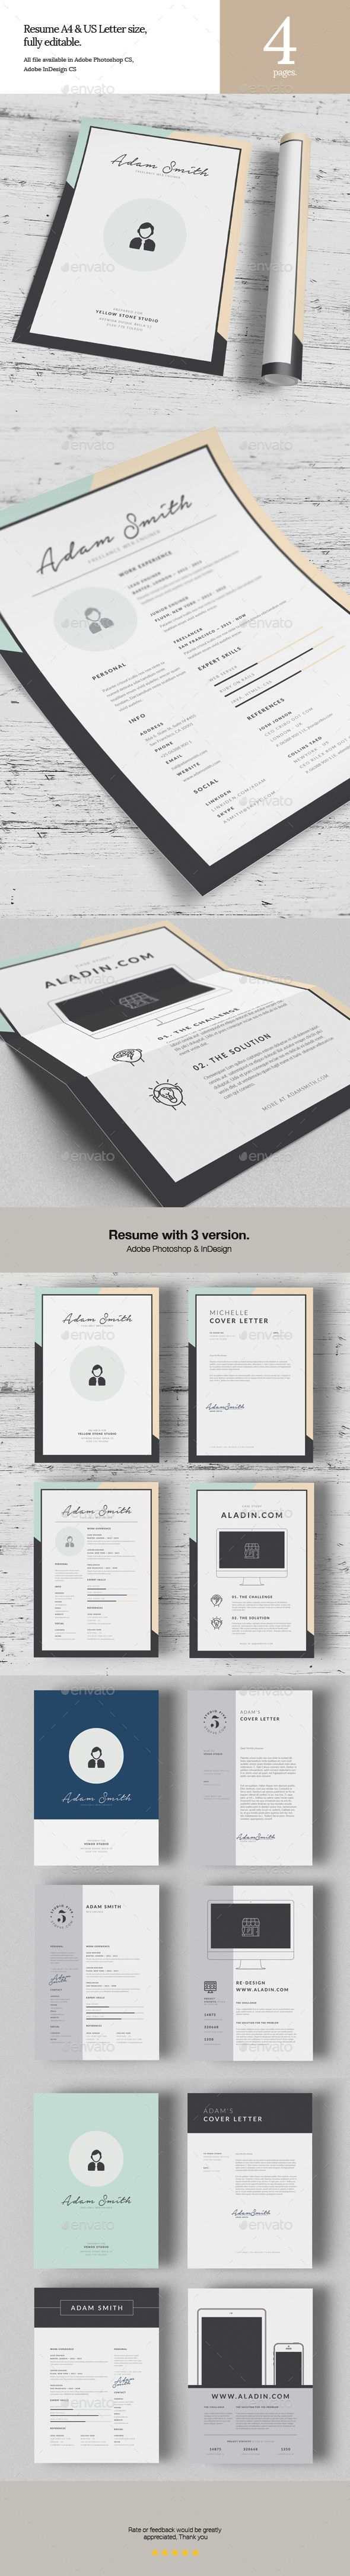 Fine 1 Round Label Template Tiny 1 Week Schedule Template Rectangular 1 Year Experience Resume Format For Dot Net 100th Day Hat Template Old 1099 Misc Form Template Gray13th Birthday Invitation Templates 25  Best Ideas About Volontariat International On Pinterest | Jeux ..